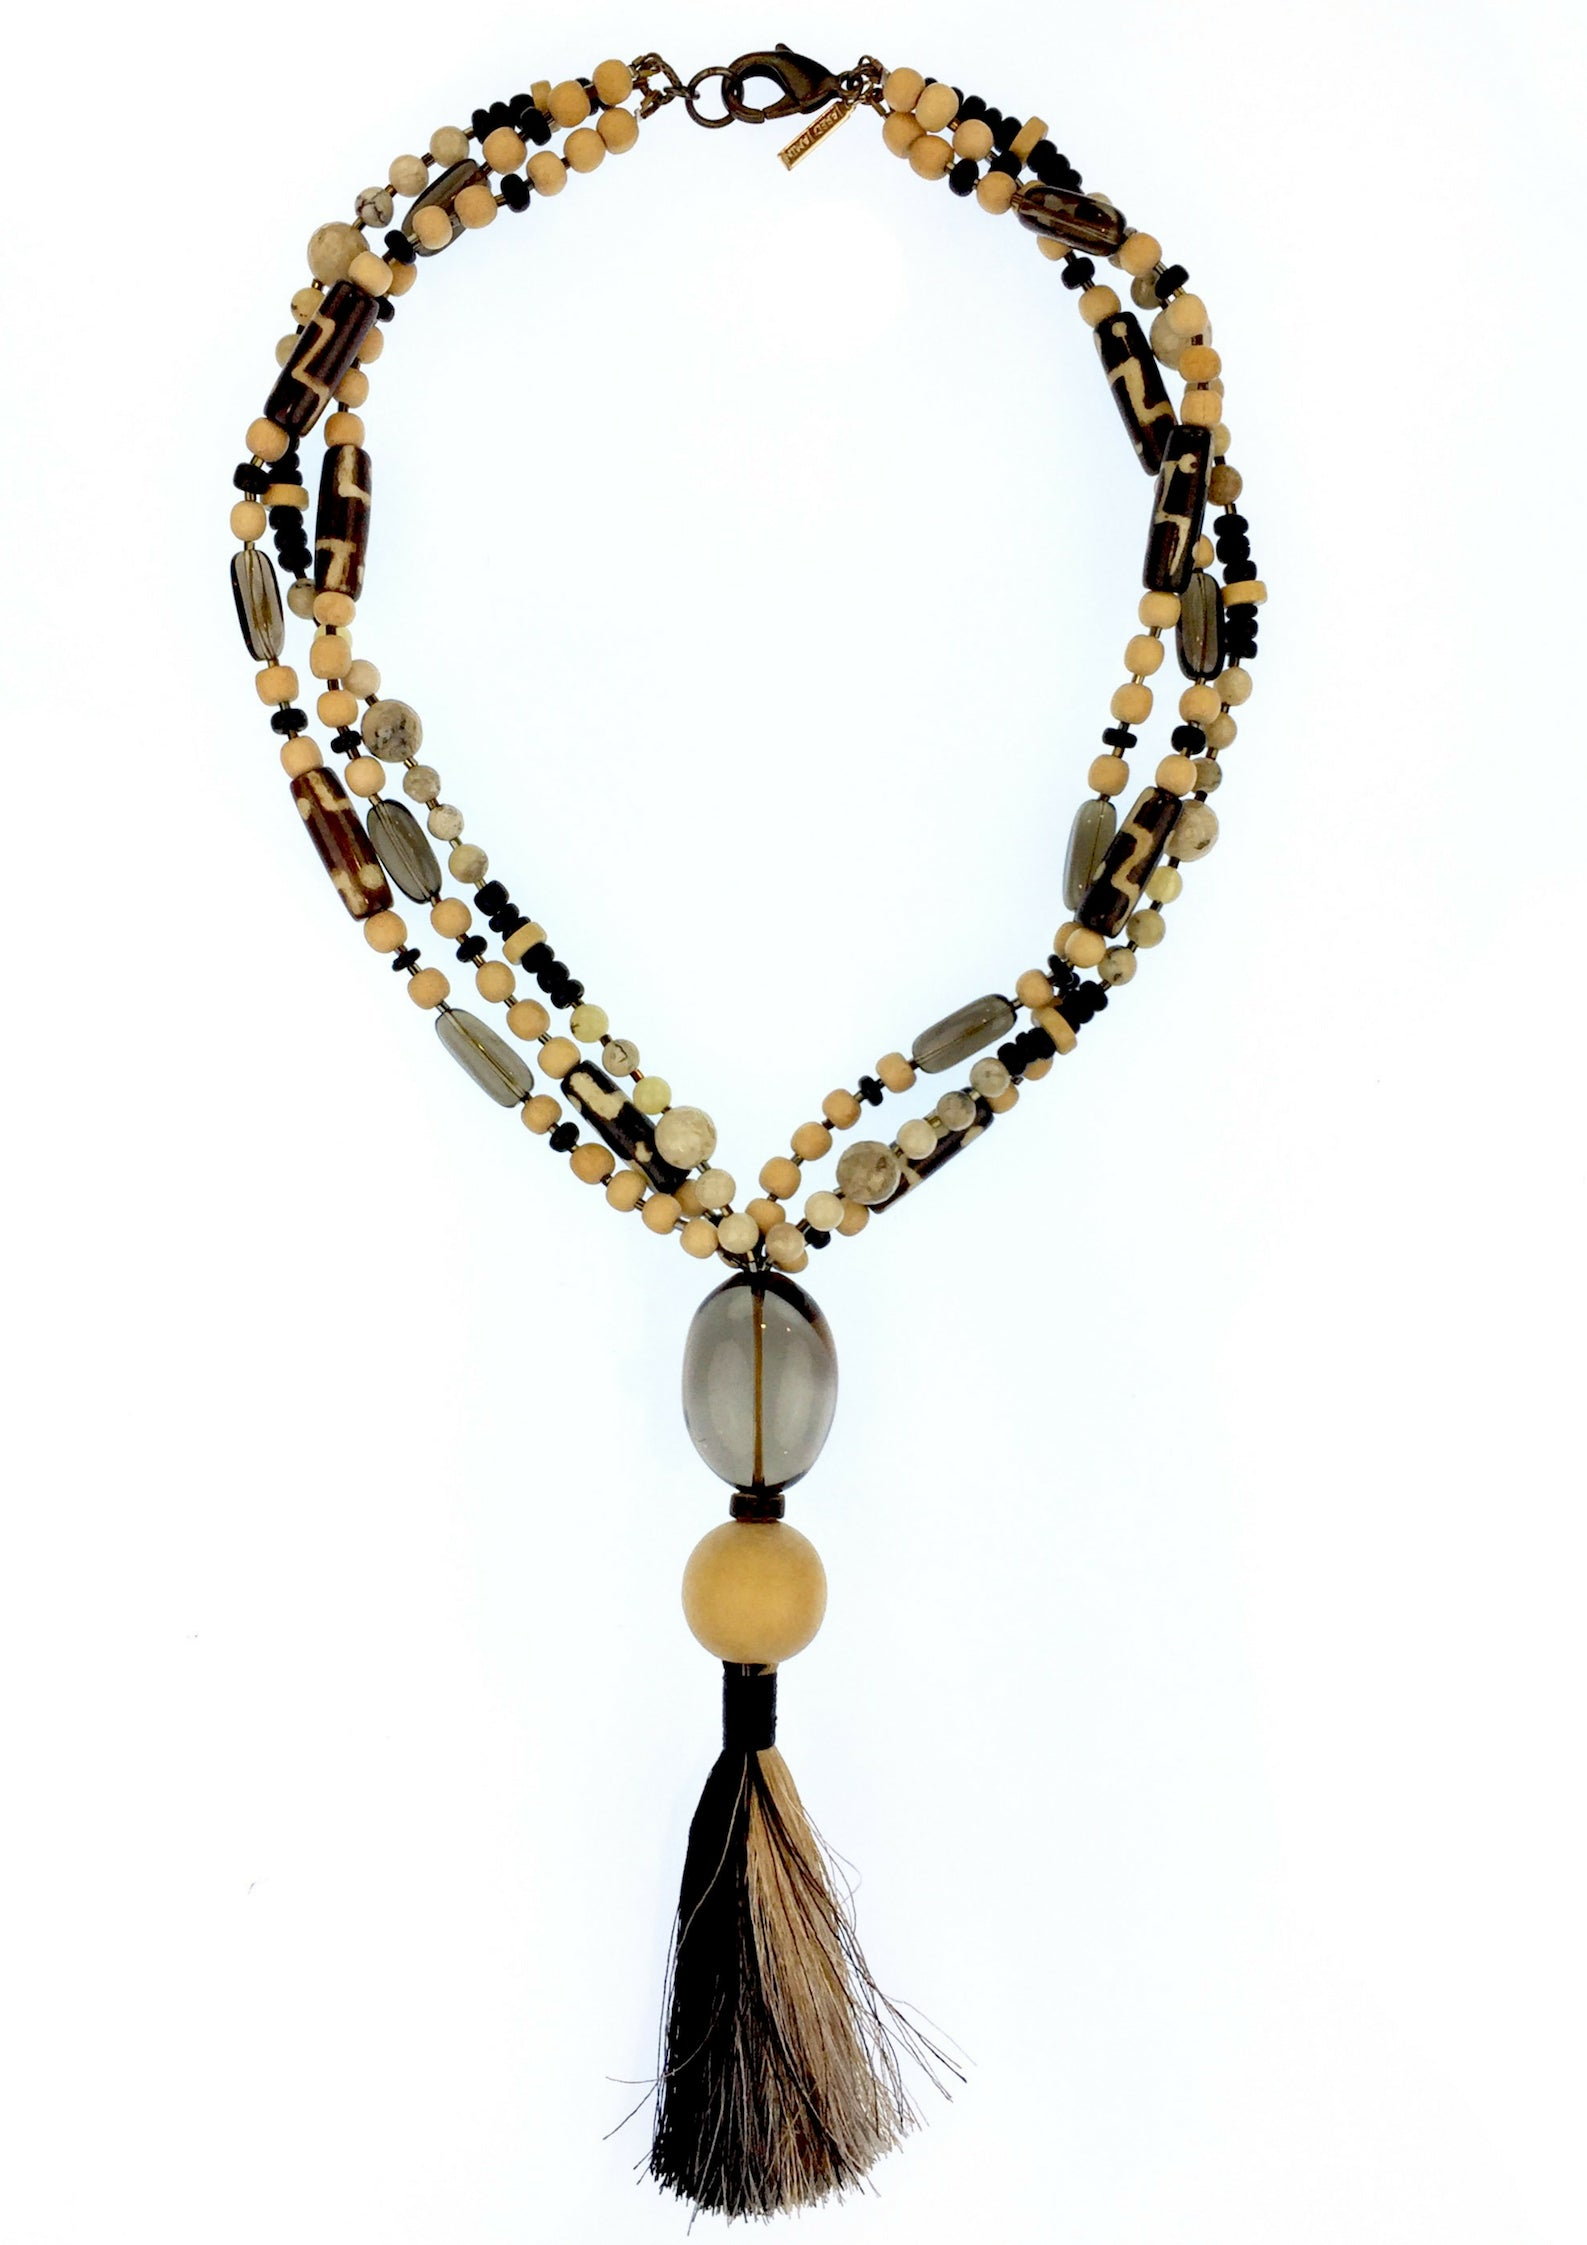 Kenya Mala Necklace-Necklaces-JAREDJAMIN Jewelry Online-JARED JAMIN